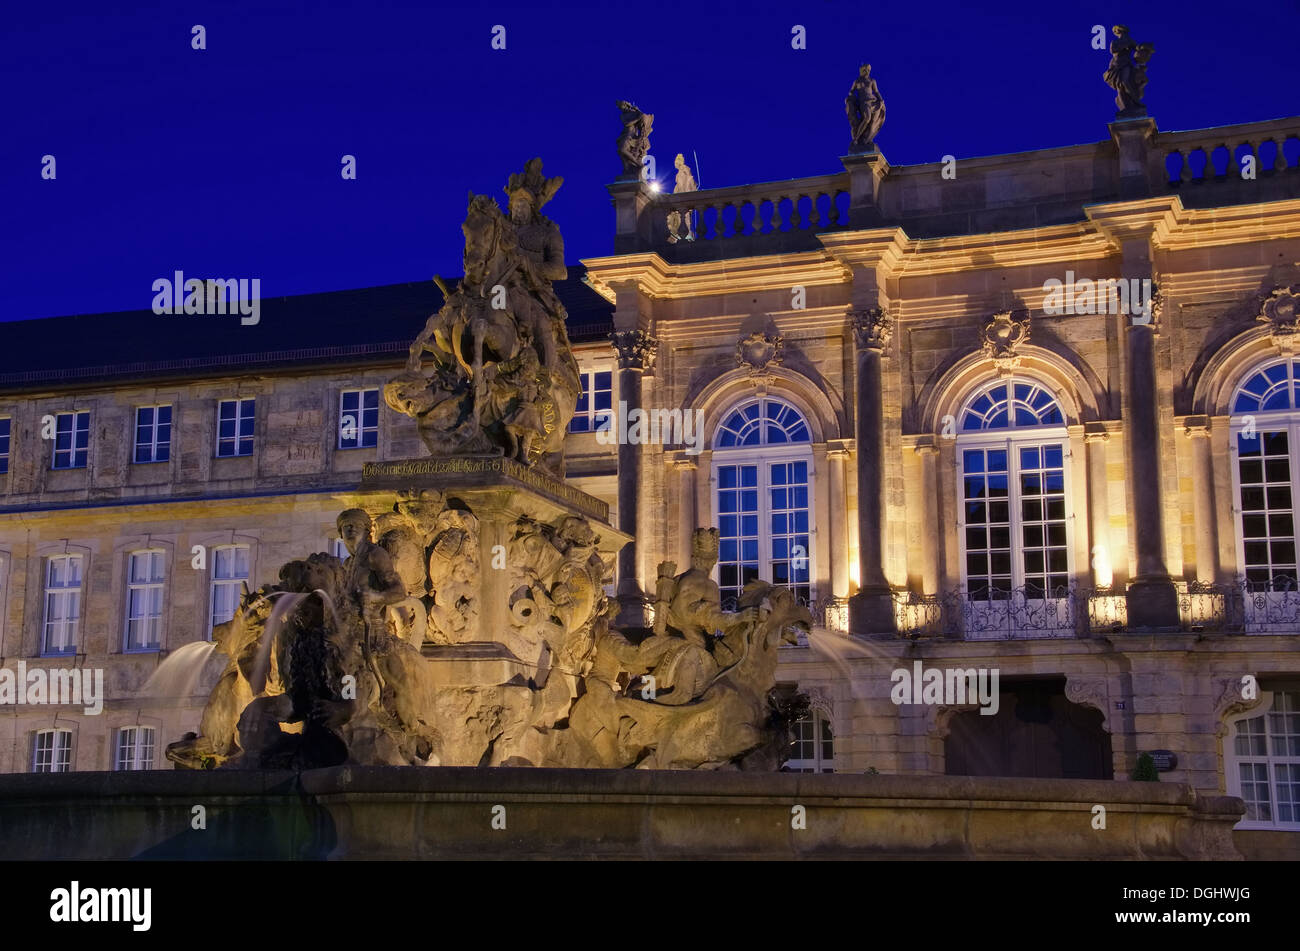 Bayreuth Neues Schloss Nacht - Bayreuth New Palace by night 01 - Stock Image